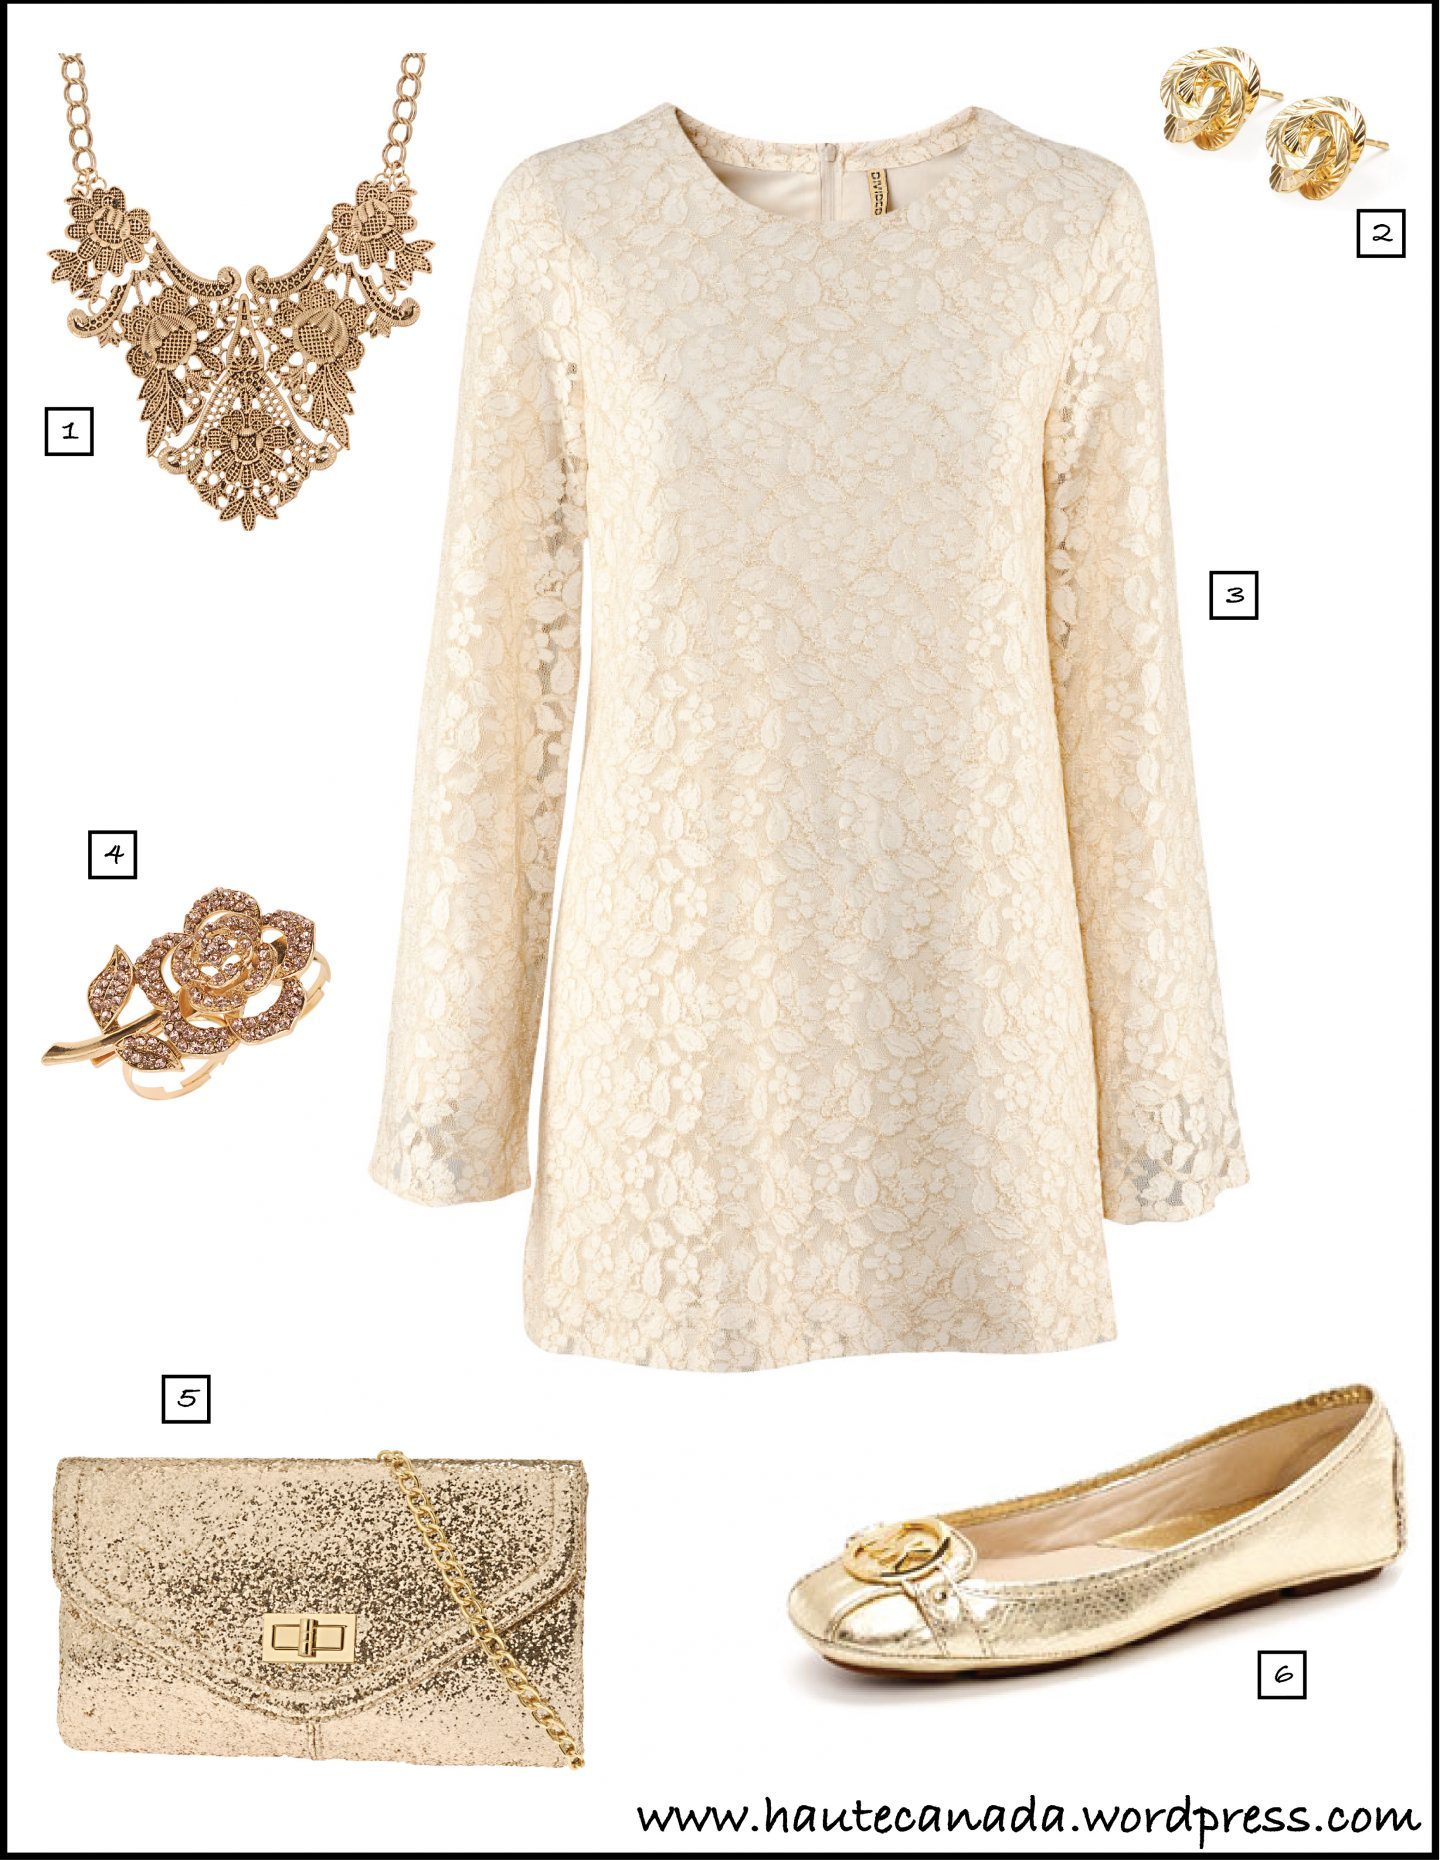 Haute's Online Stylist: A Champagne and Lace NYE